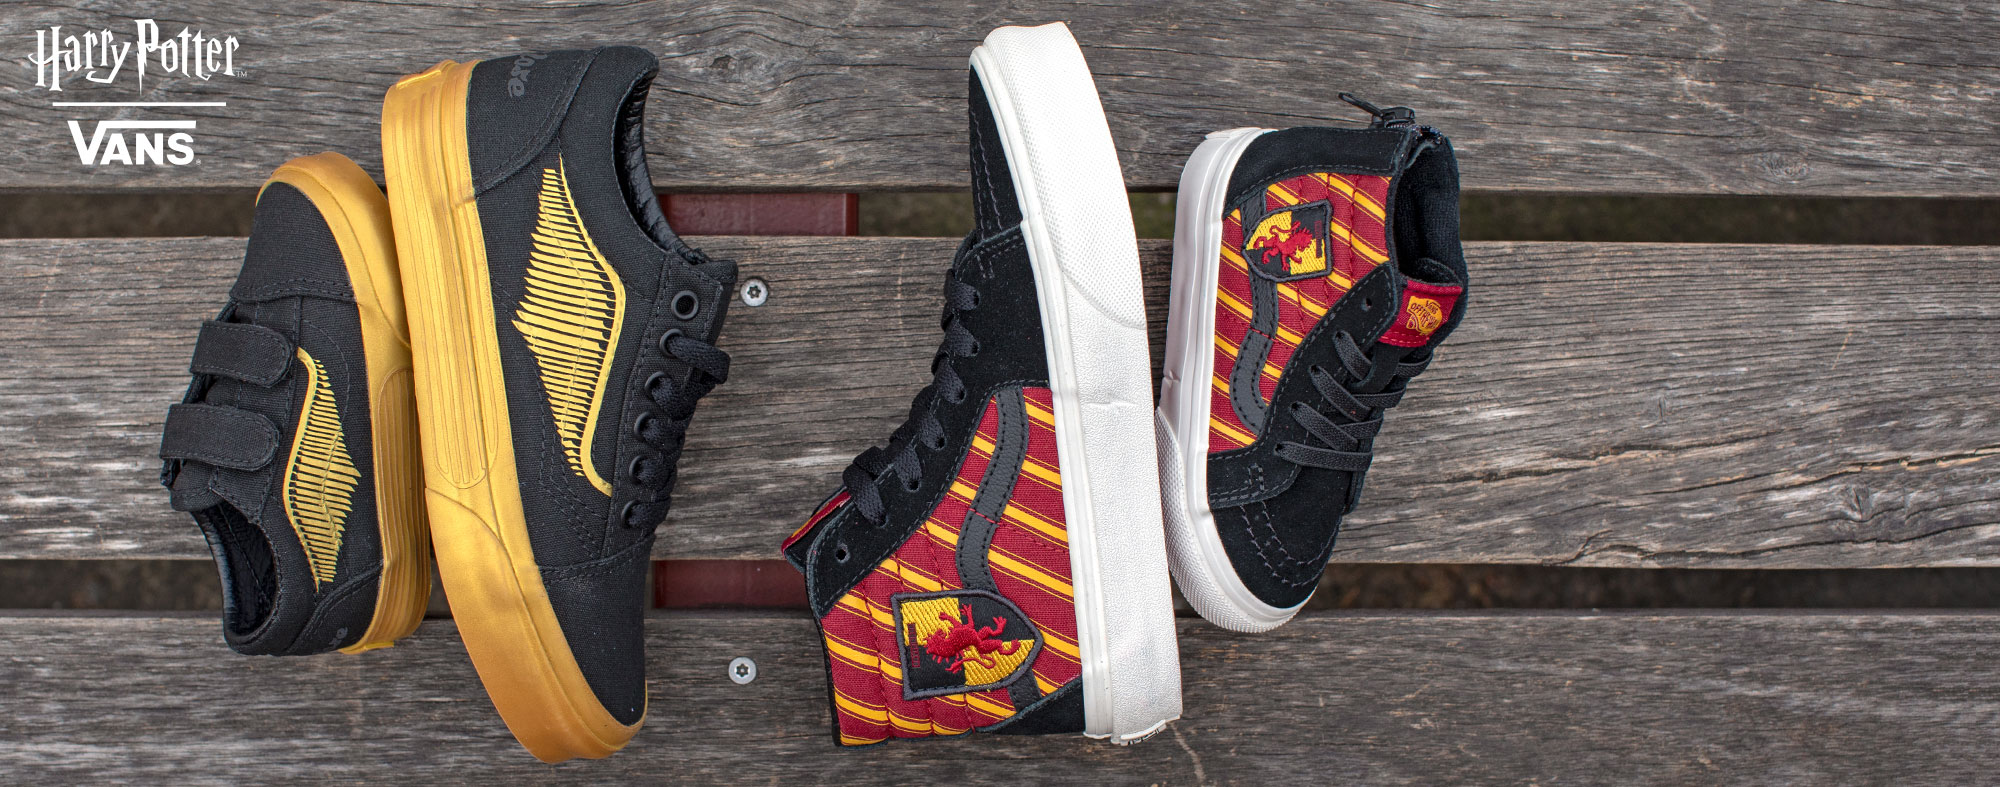 Shop Vans x Harry Potter